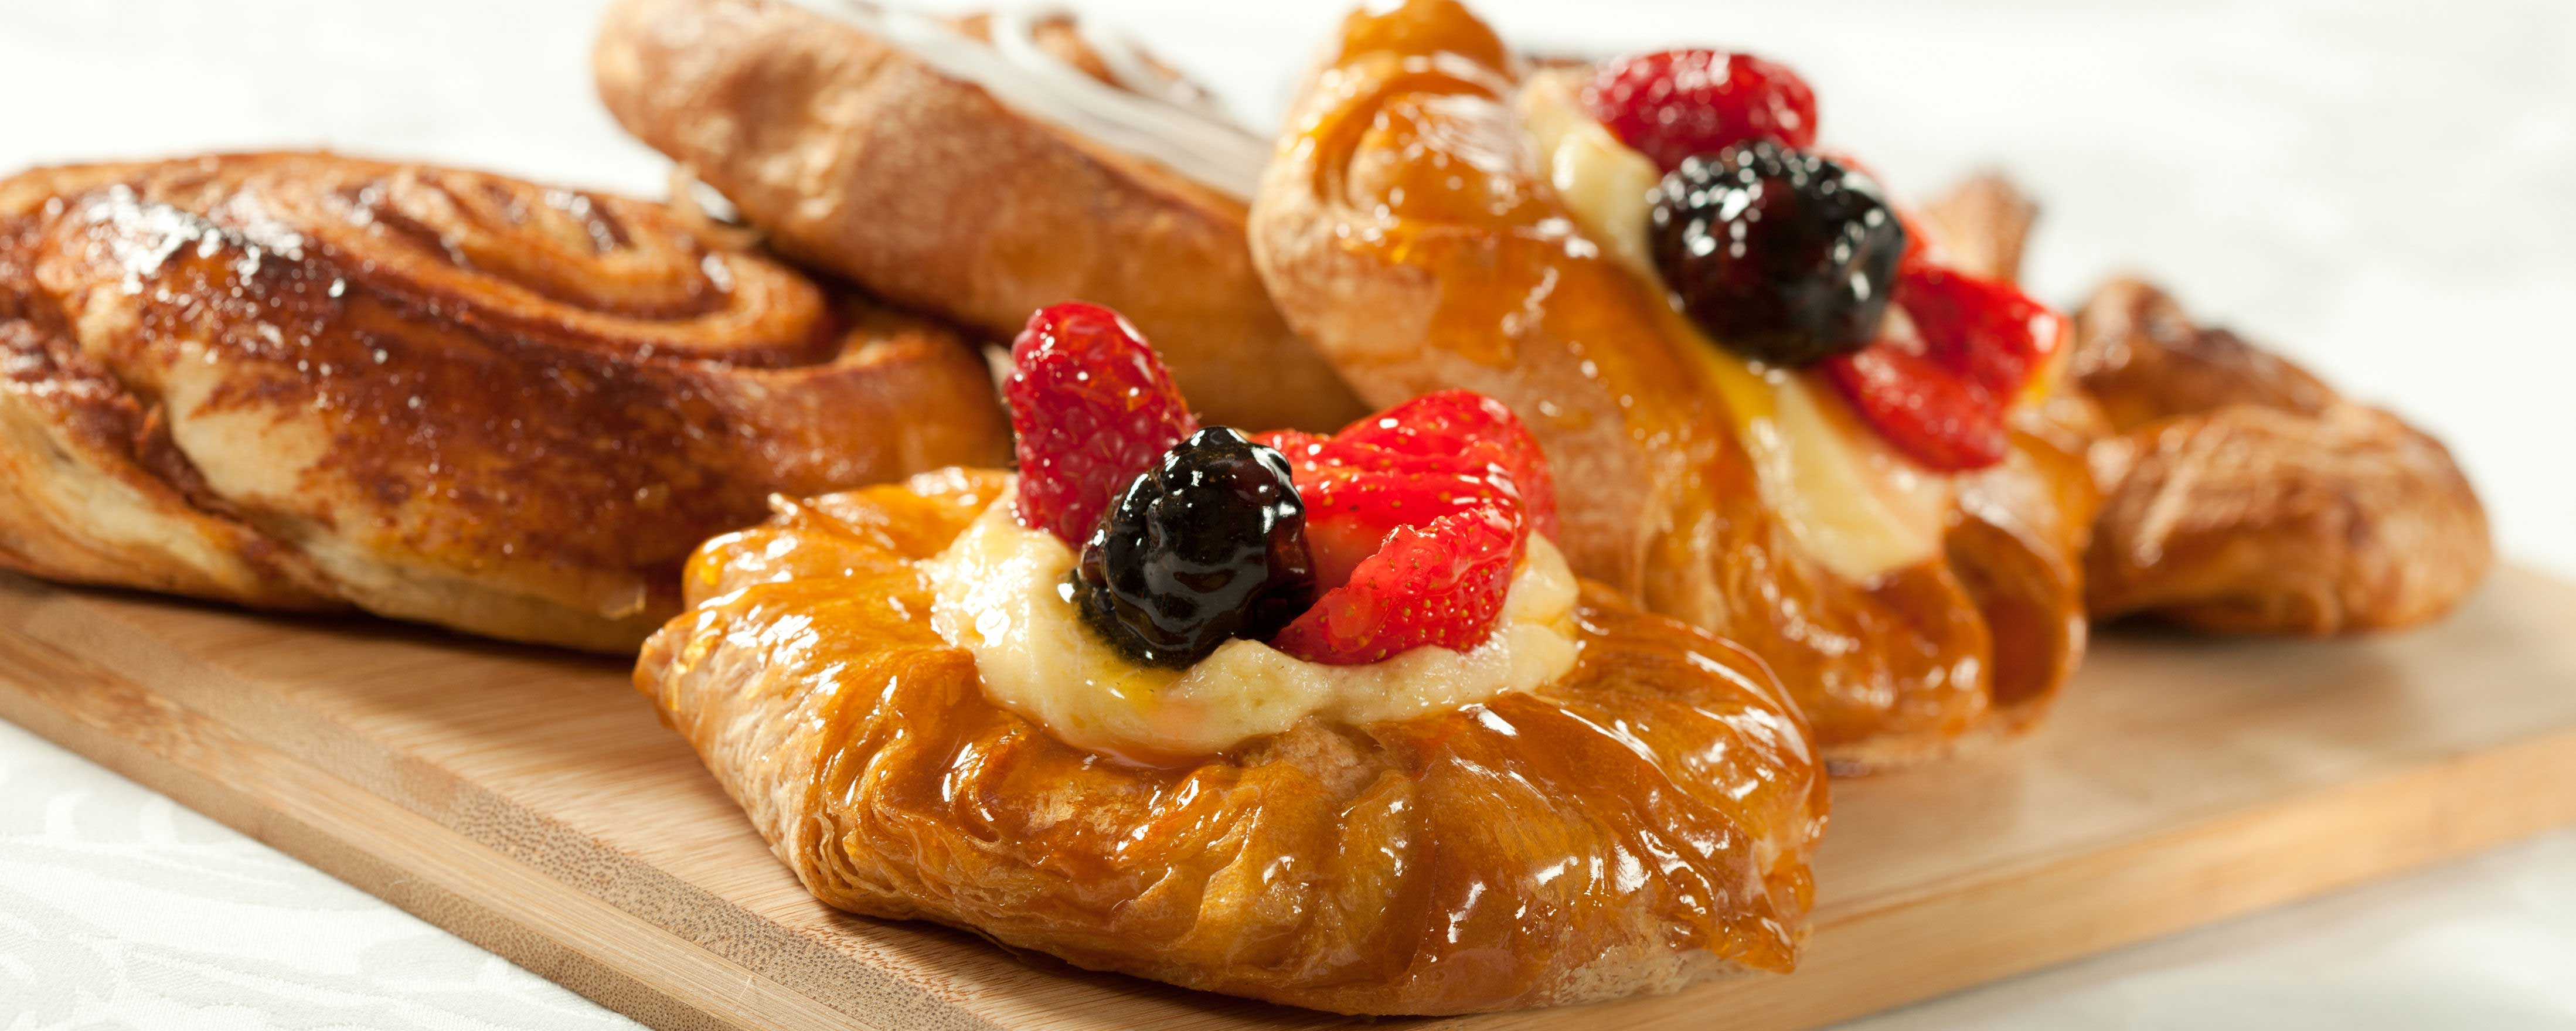 Danish pastries.jpg